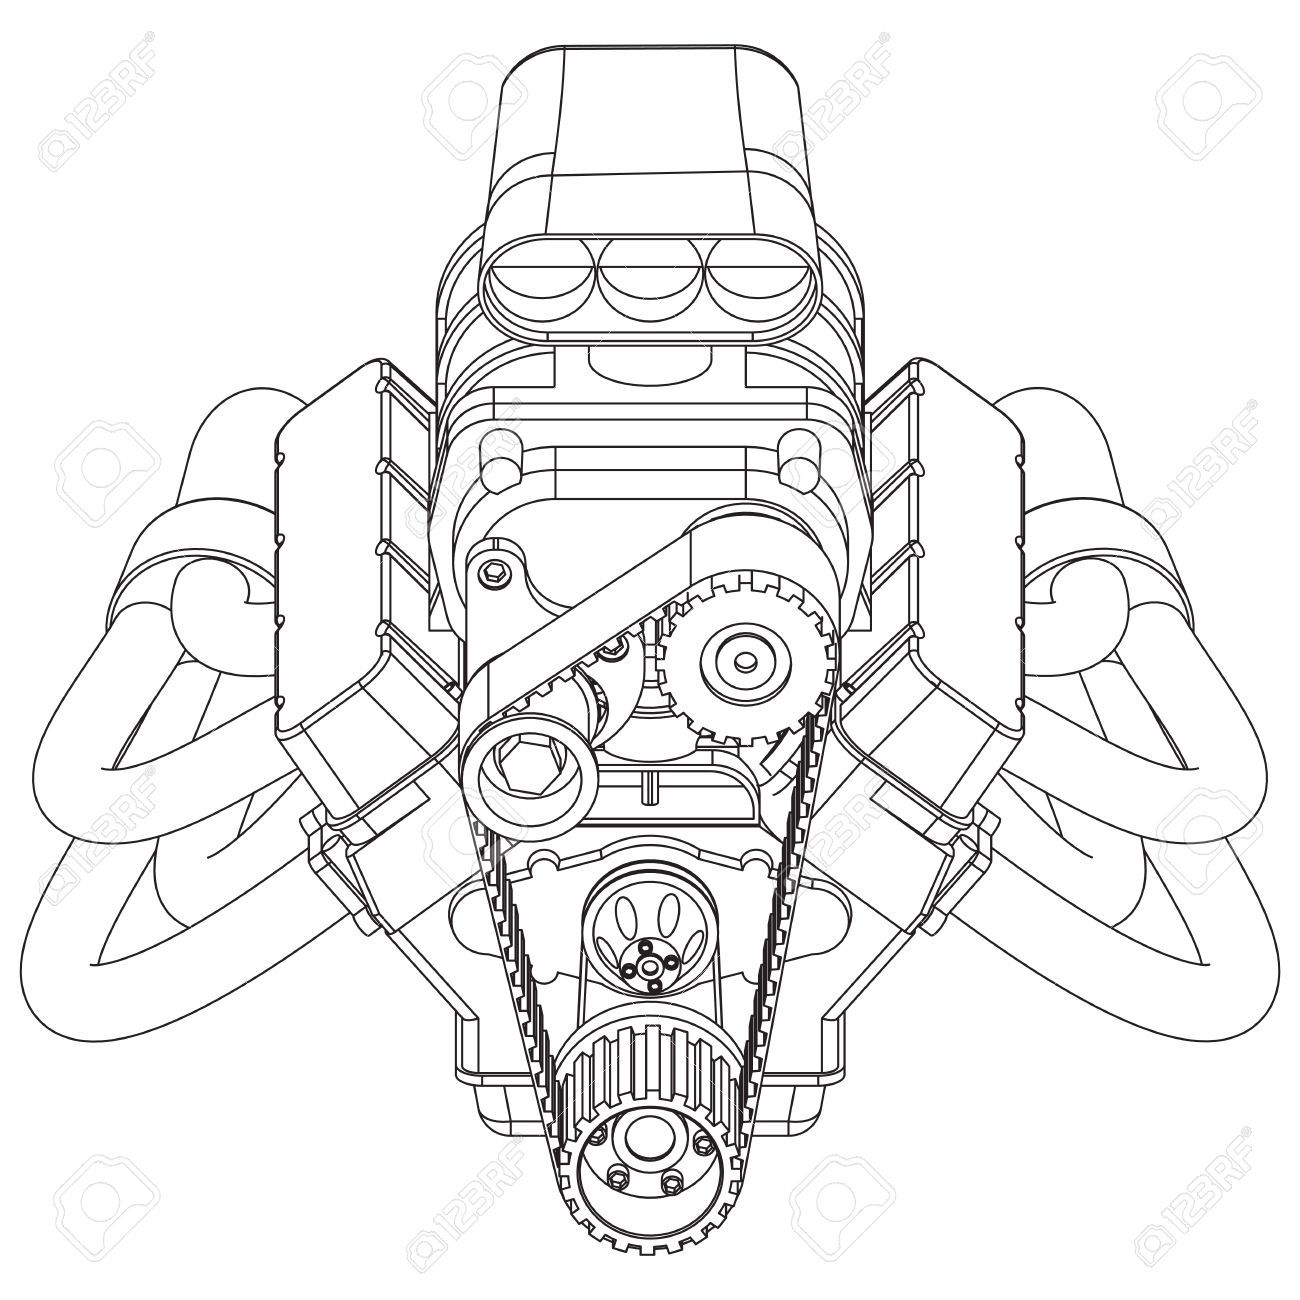 Schematic Drawing Of Hot Rod Engine Vector Illustration